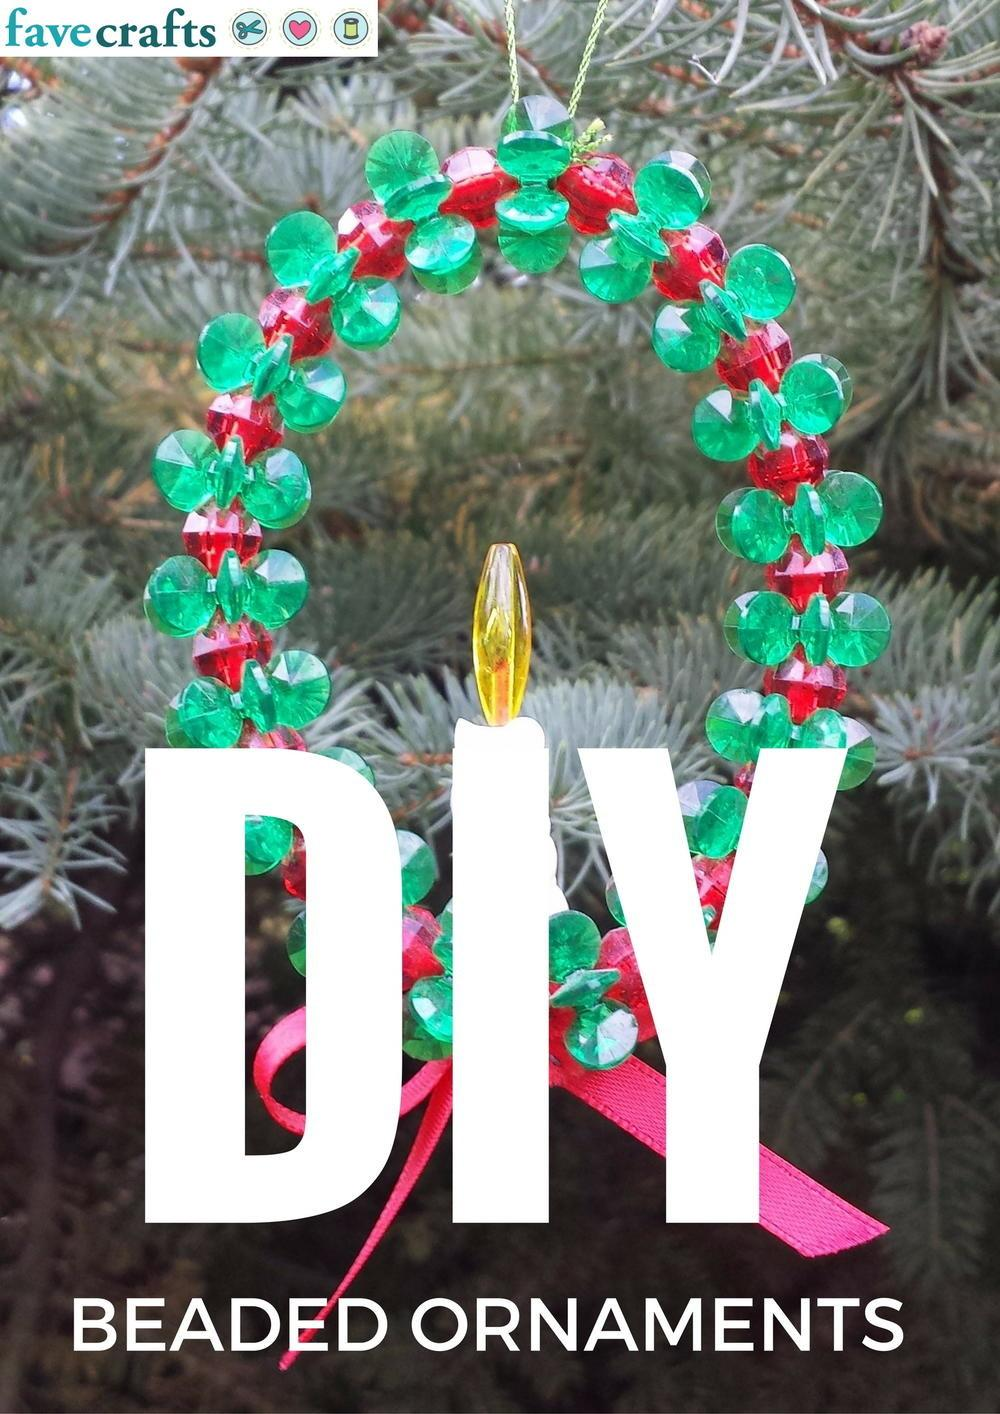 Diy Beaded Ornaments Favecrafts